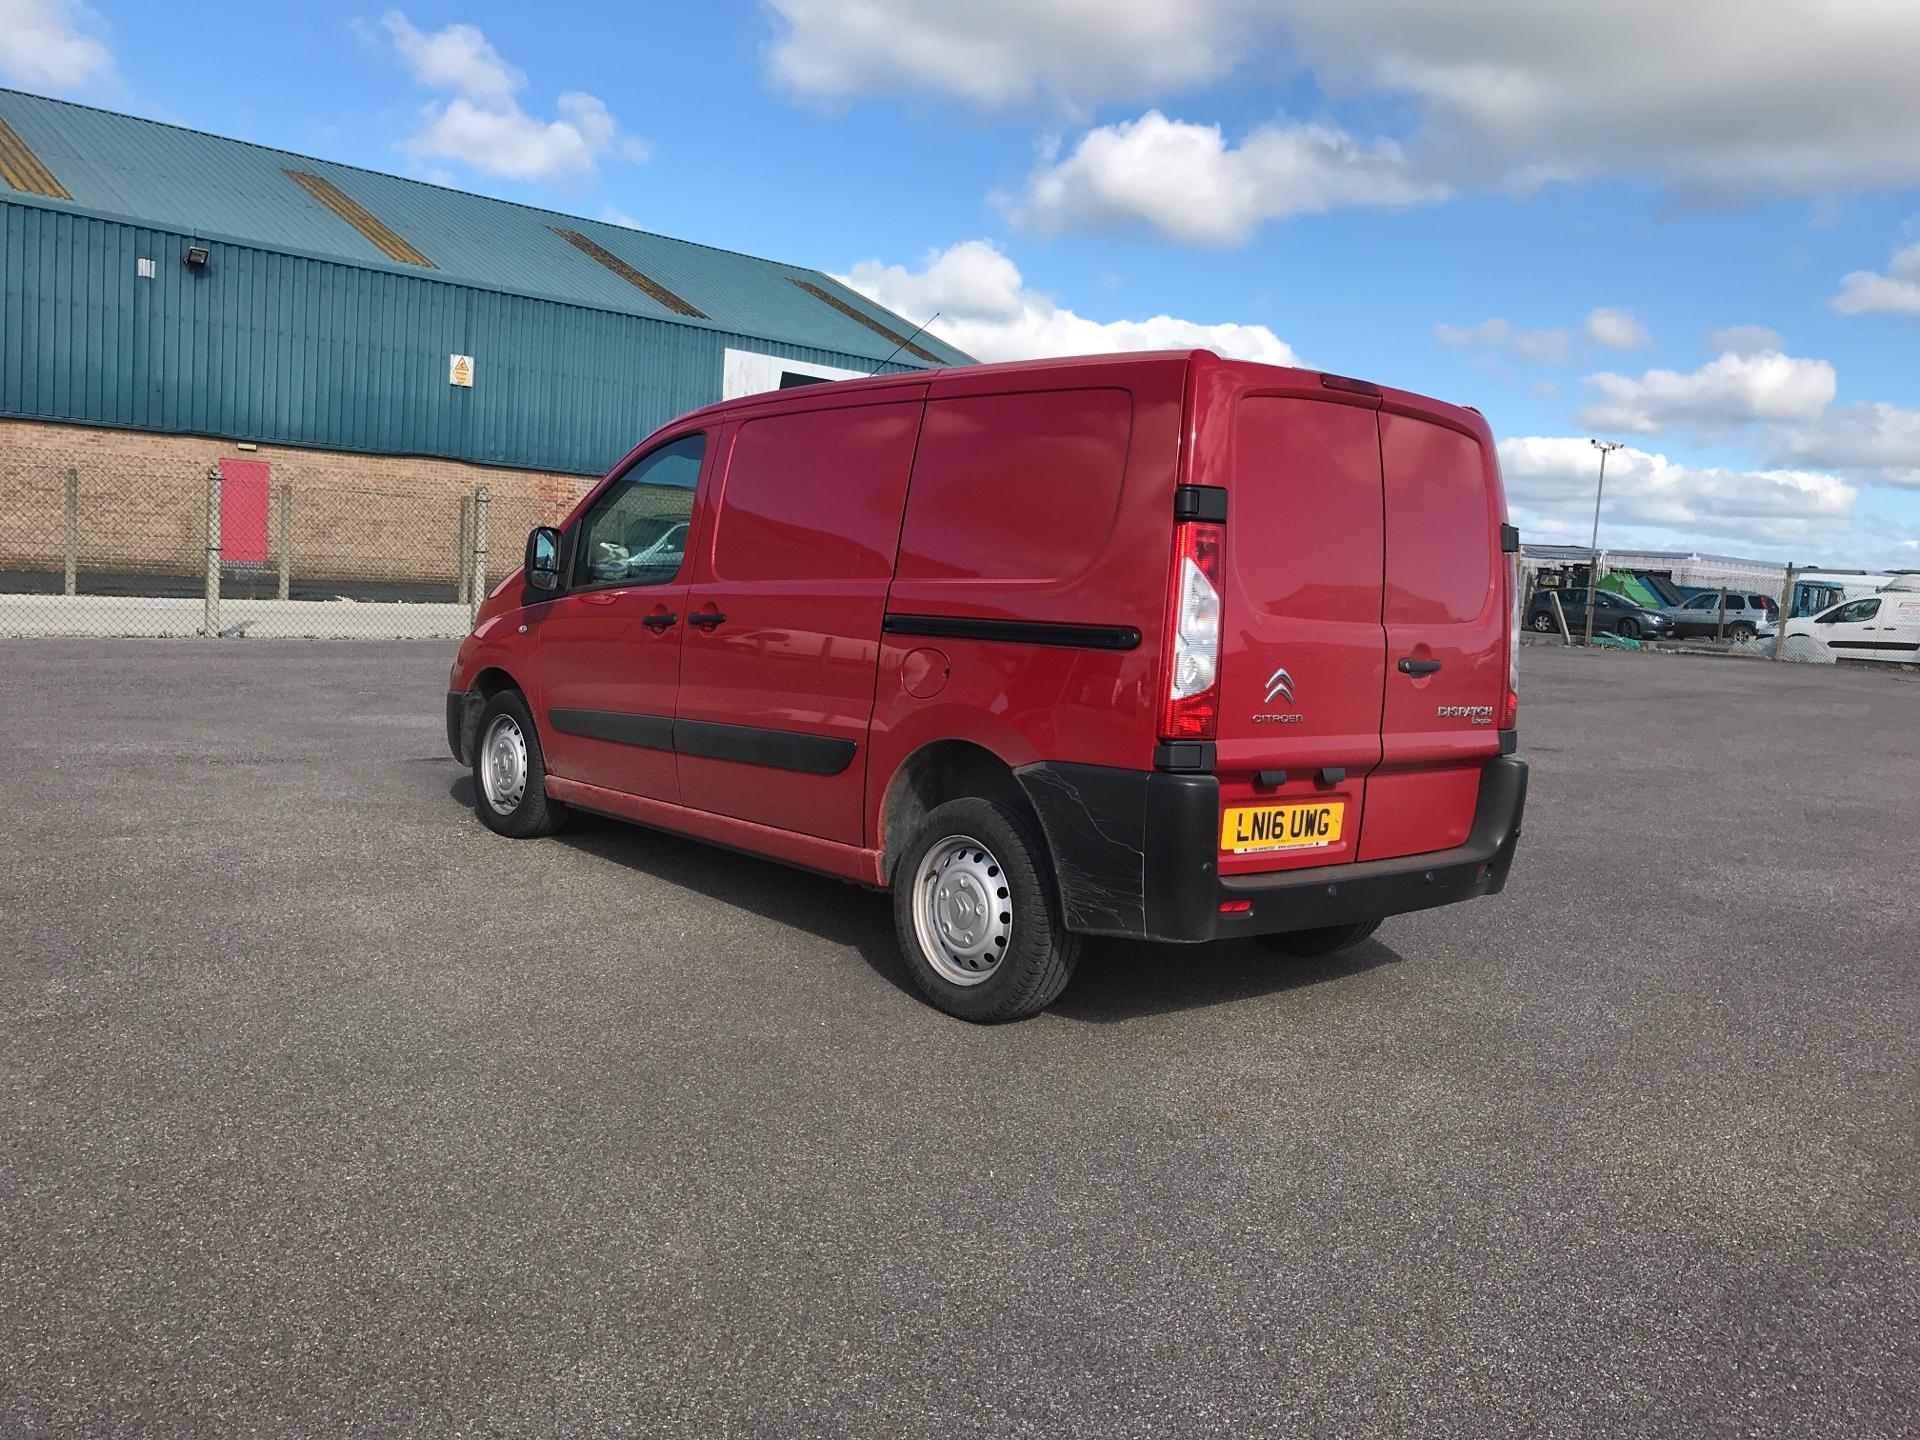 2016 Citroen Dispatch L1 DIESEL 1000 1.6 HDI H1 VAN ENTERPRISE EURO 4/5. AIR CON, SAT NAV (LN16UWG) Image 5